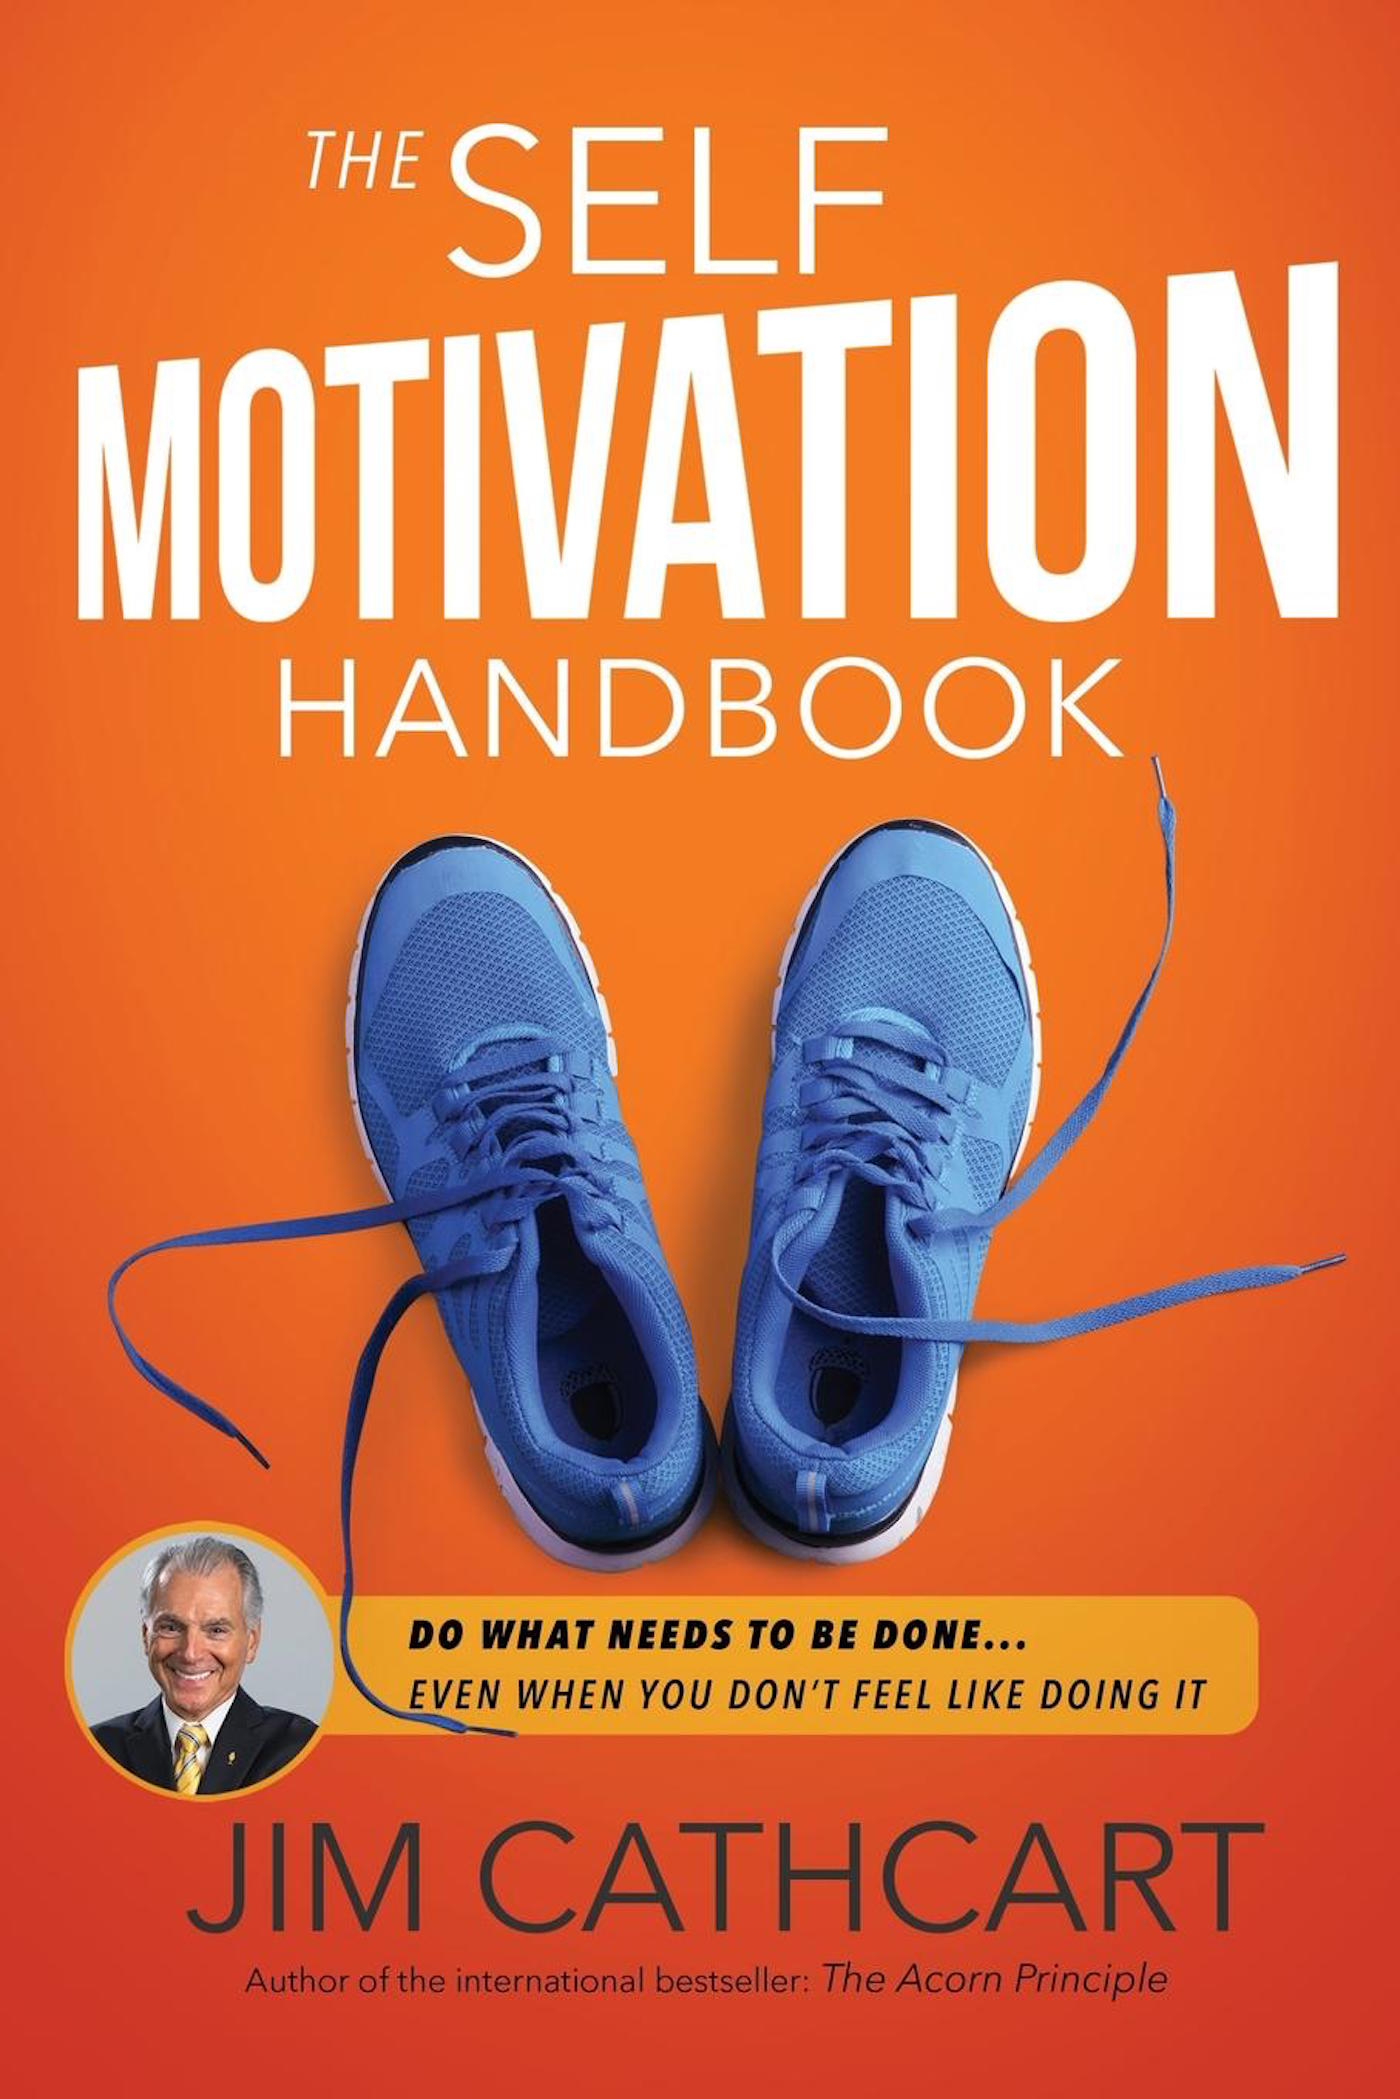 The Self-Motivation Handbook